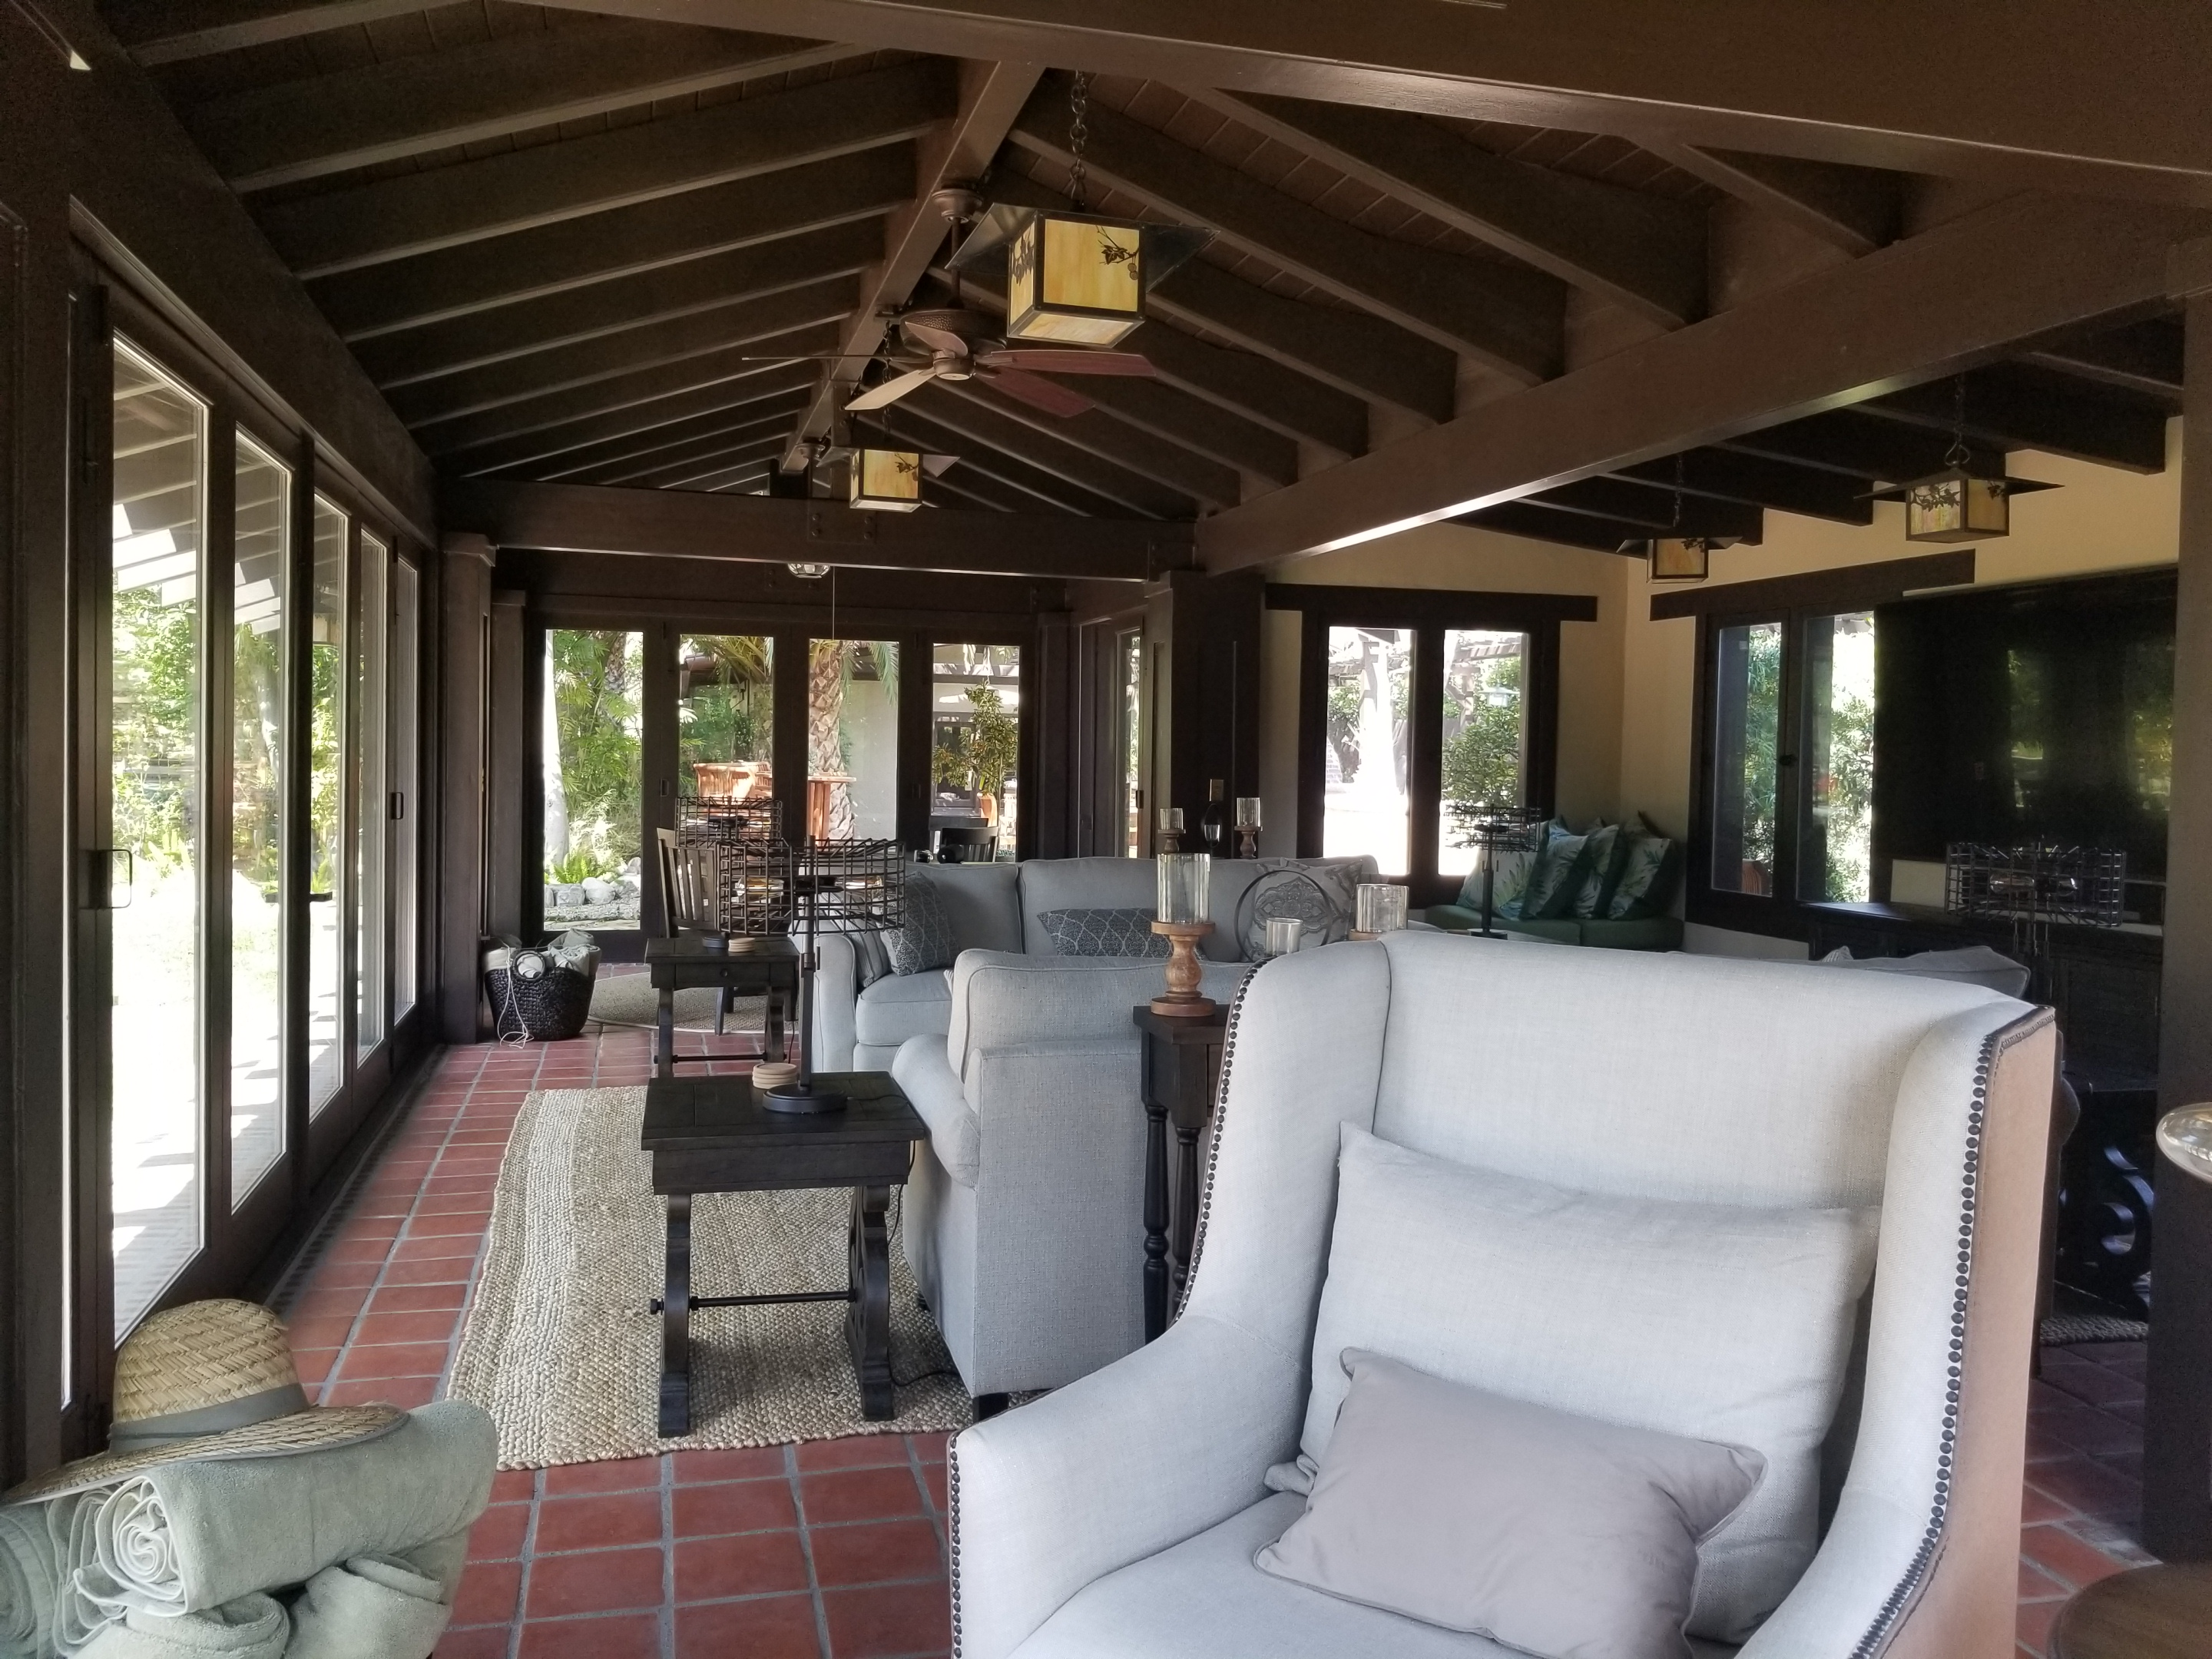 Grand Ave Pool House interior view